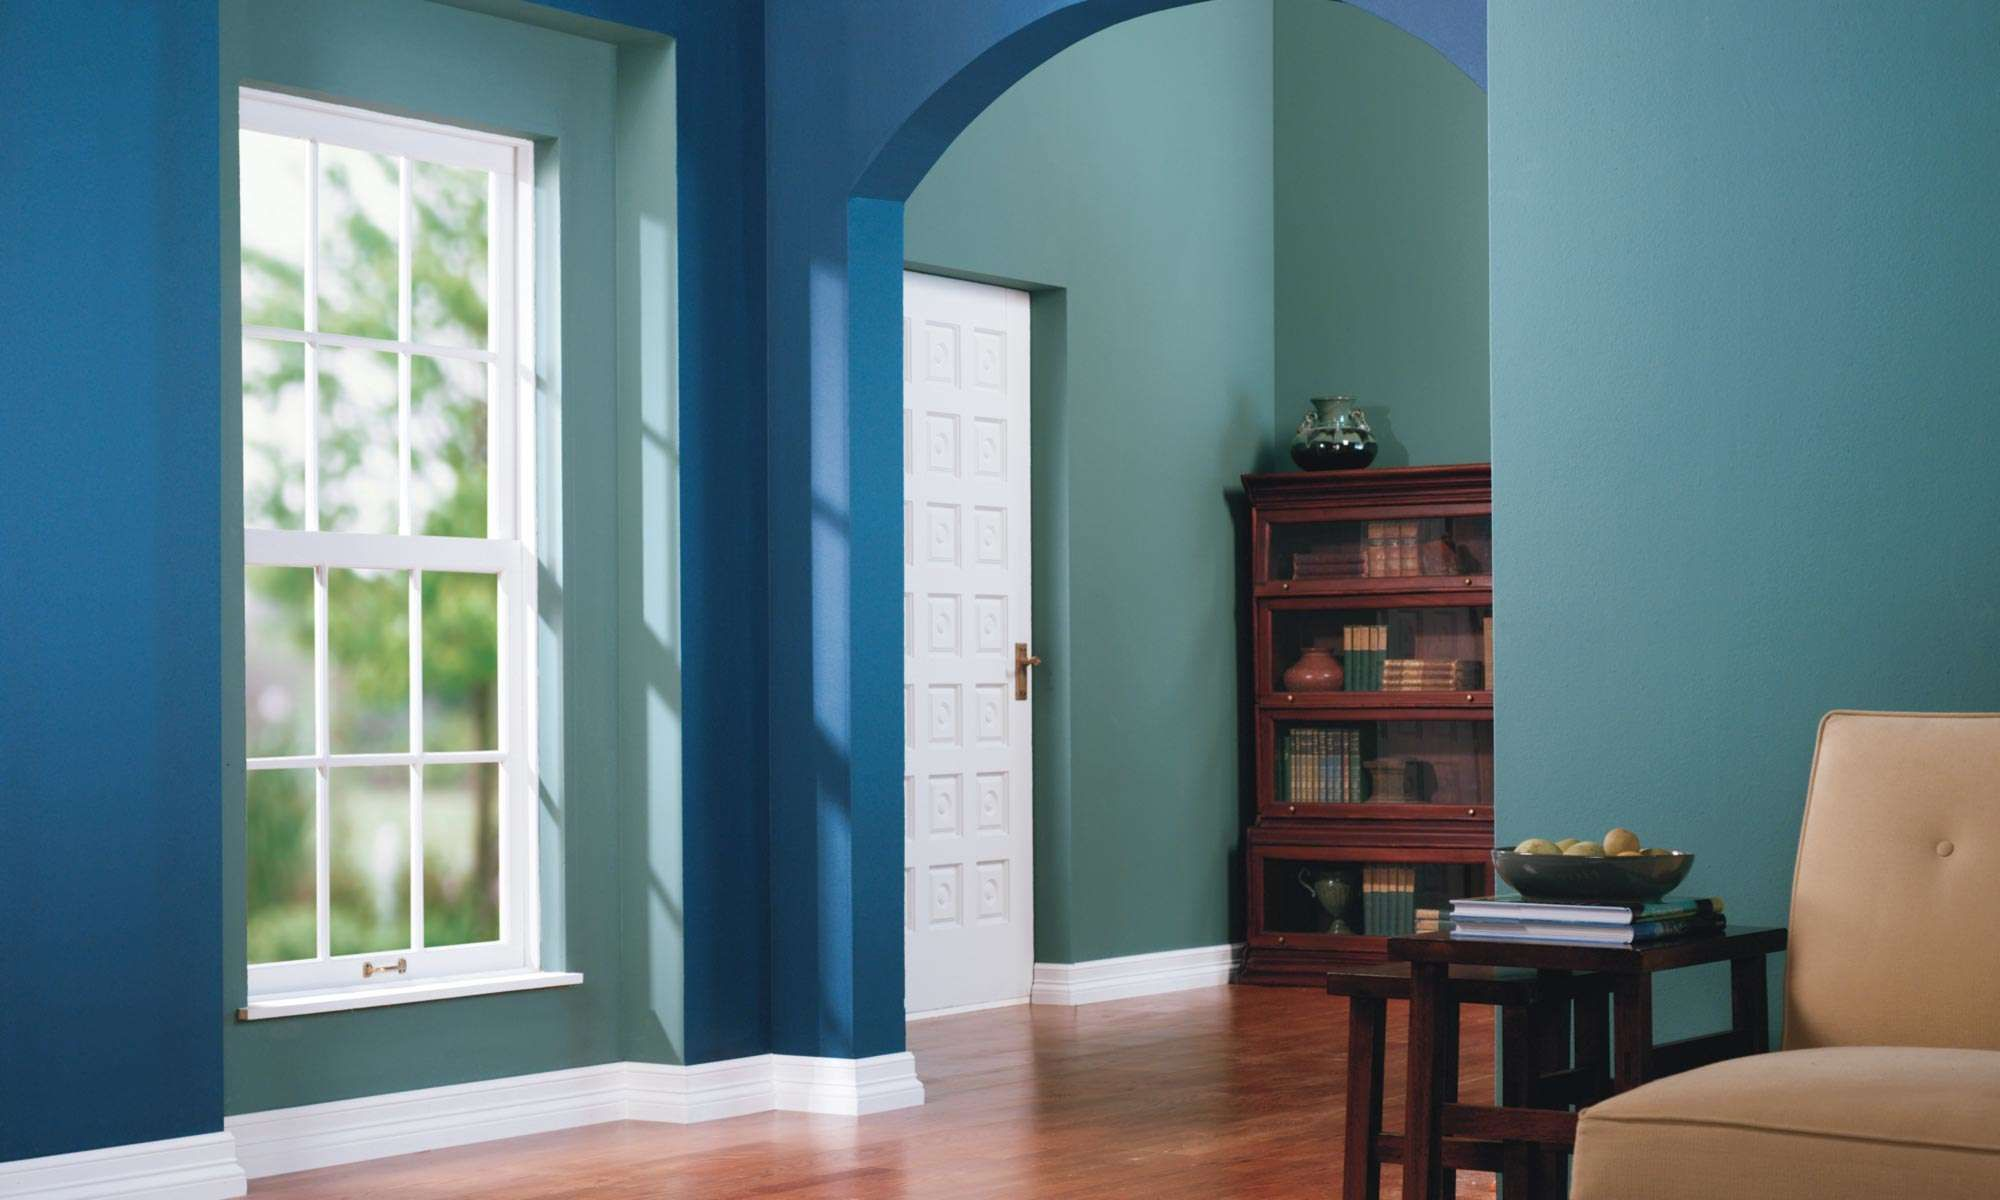 Pleasing Home Home Interiorpainting Interior Painting Color Home Interior House Colors Best House Paint Colors House Paint Color Combination